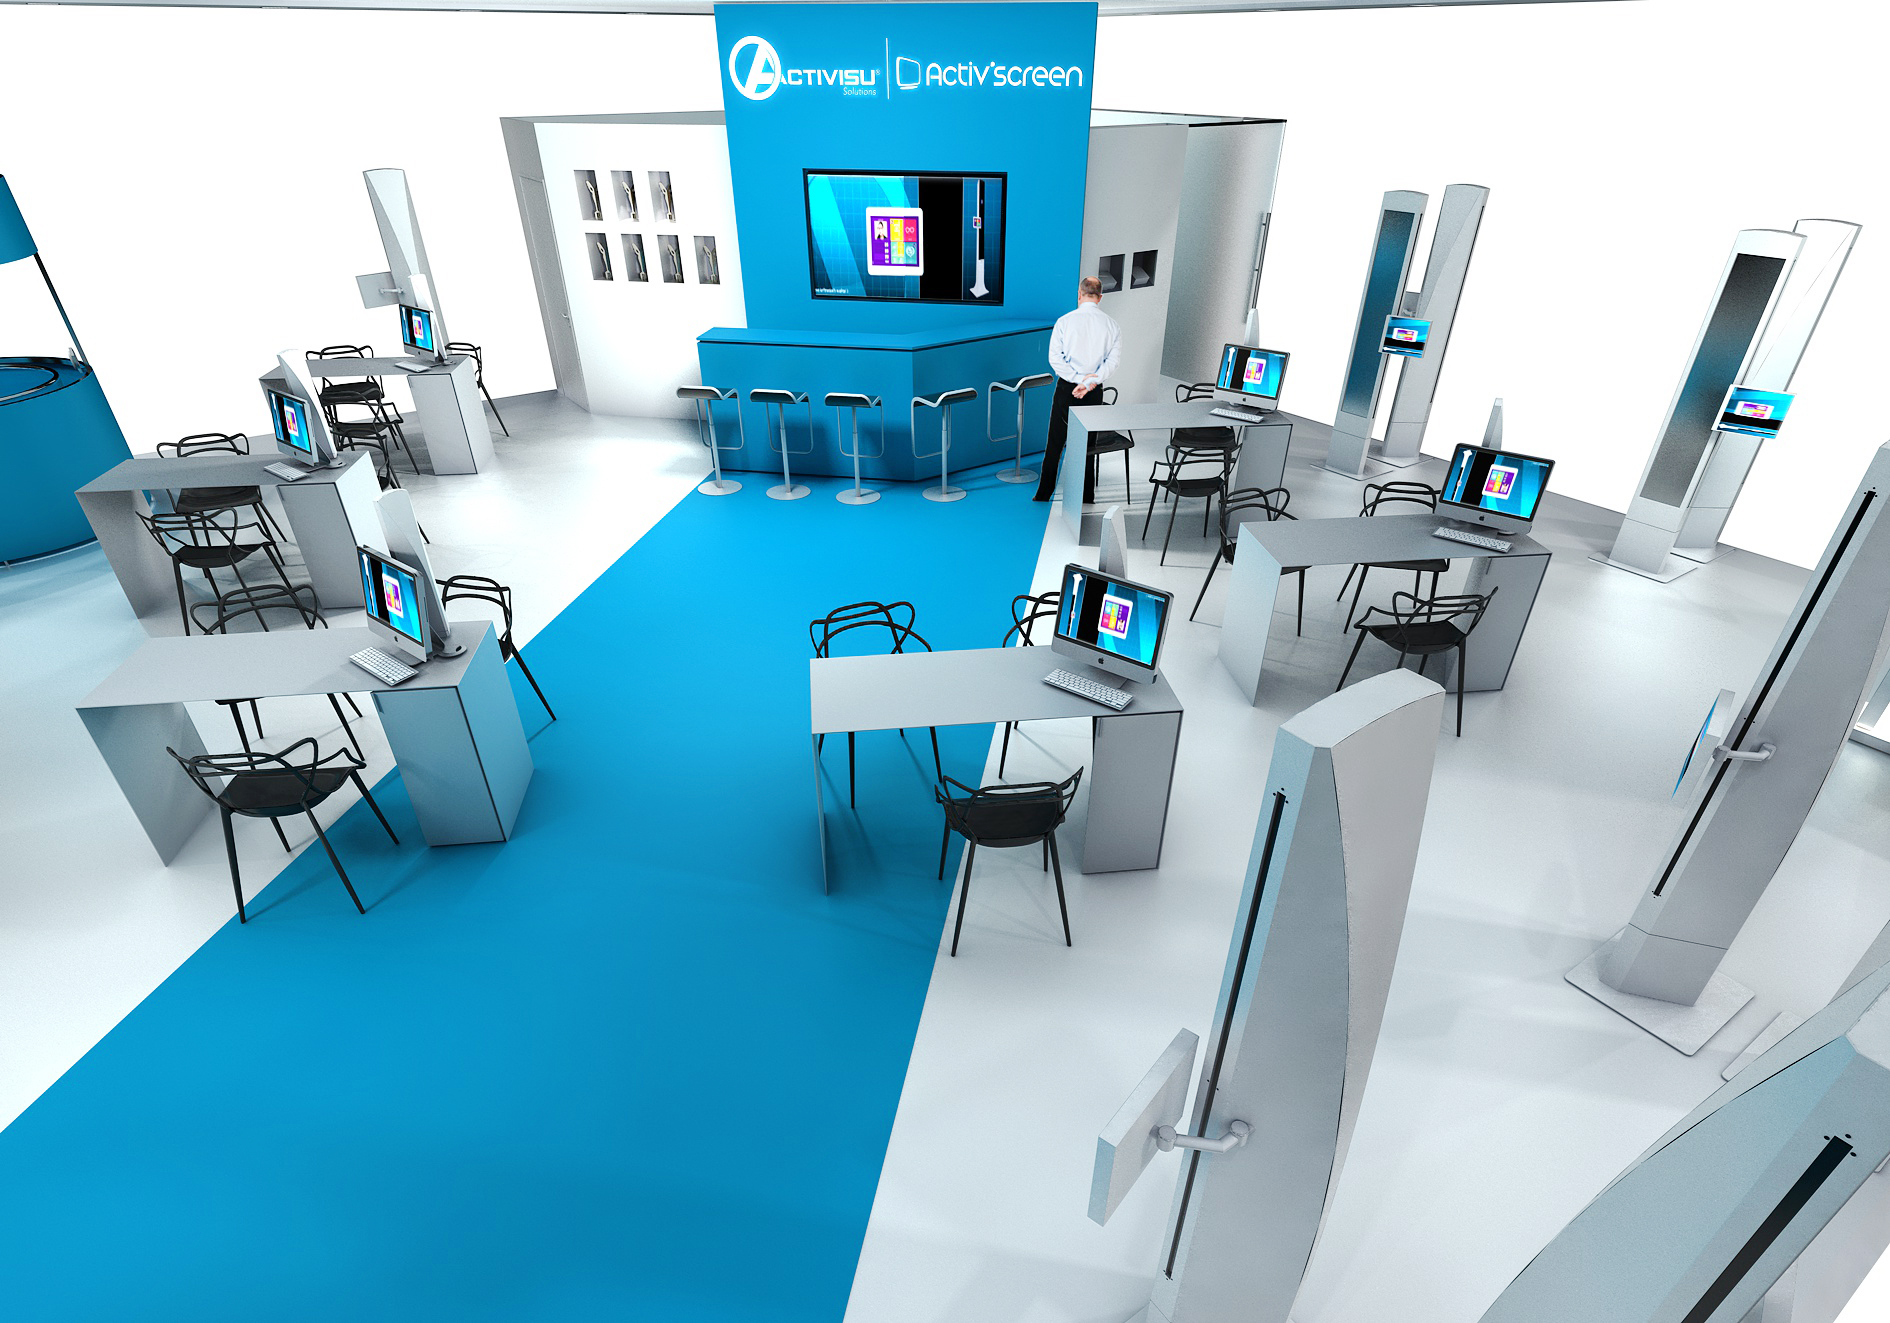 conception STAND IVS SILMO 2016 6.jpg